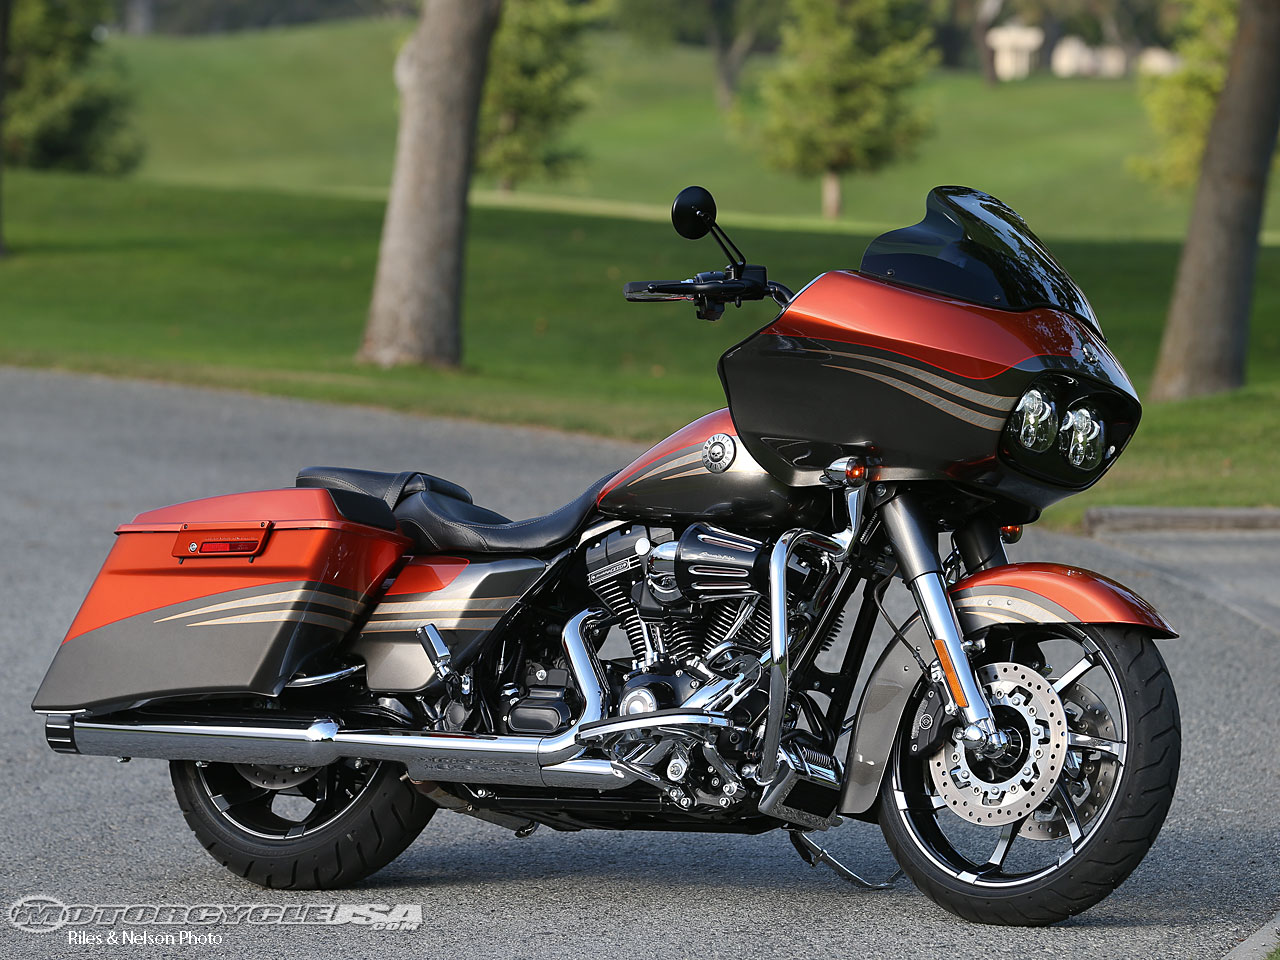 Harley-Davidson FLHR Road King 110th Anniversary 2013 images #81576